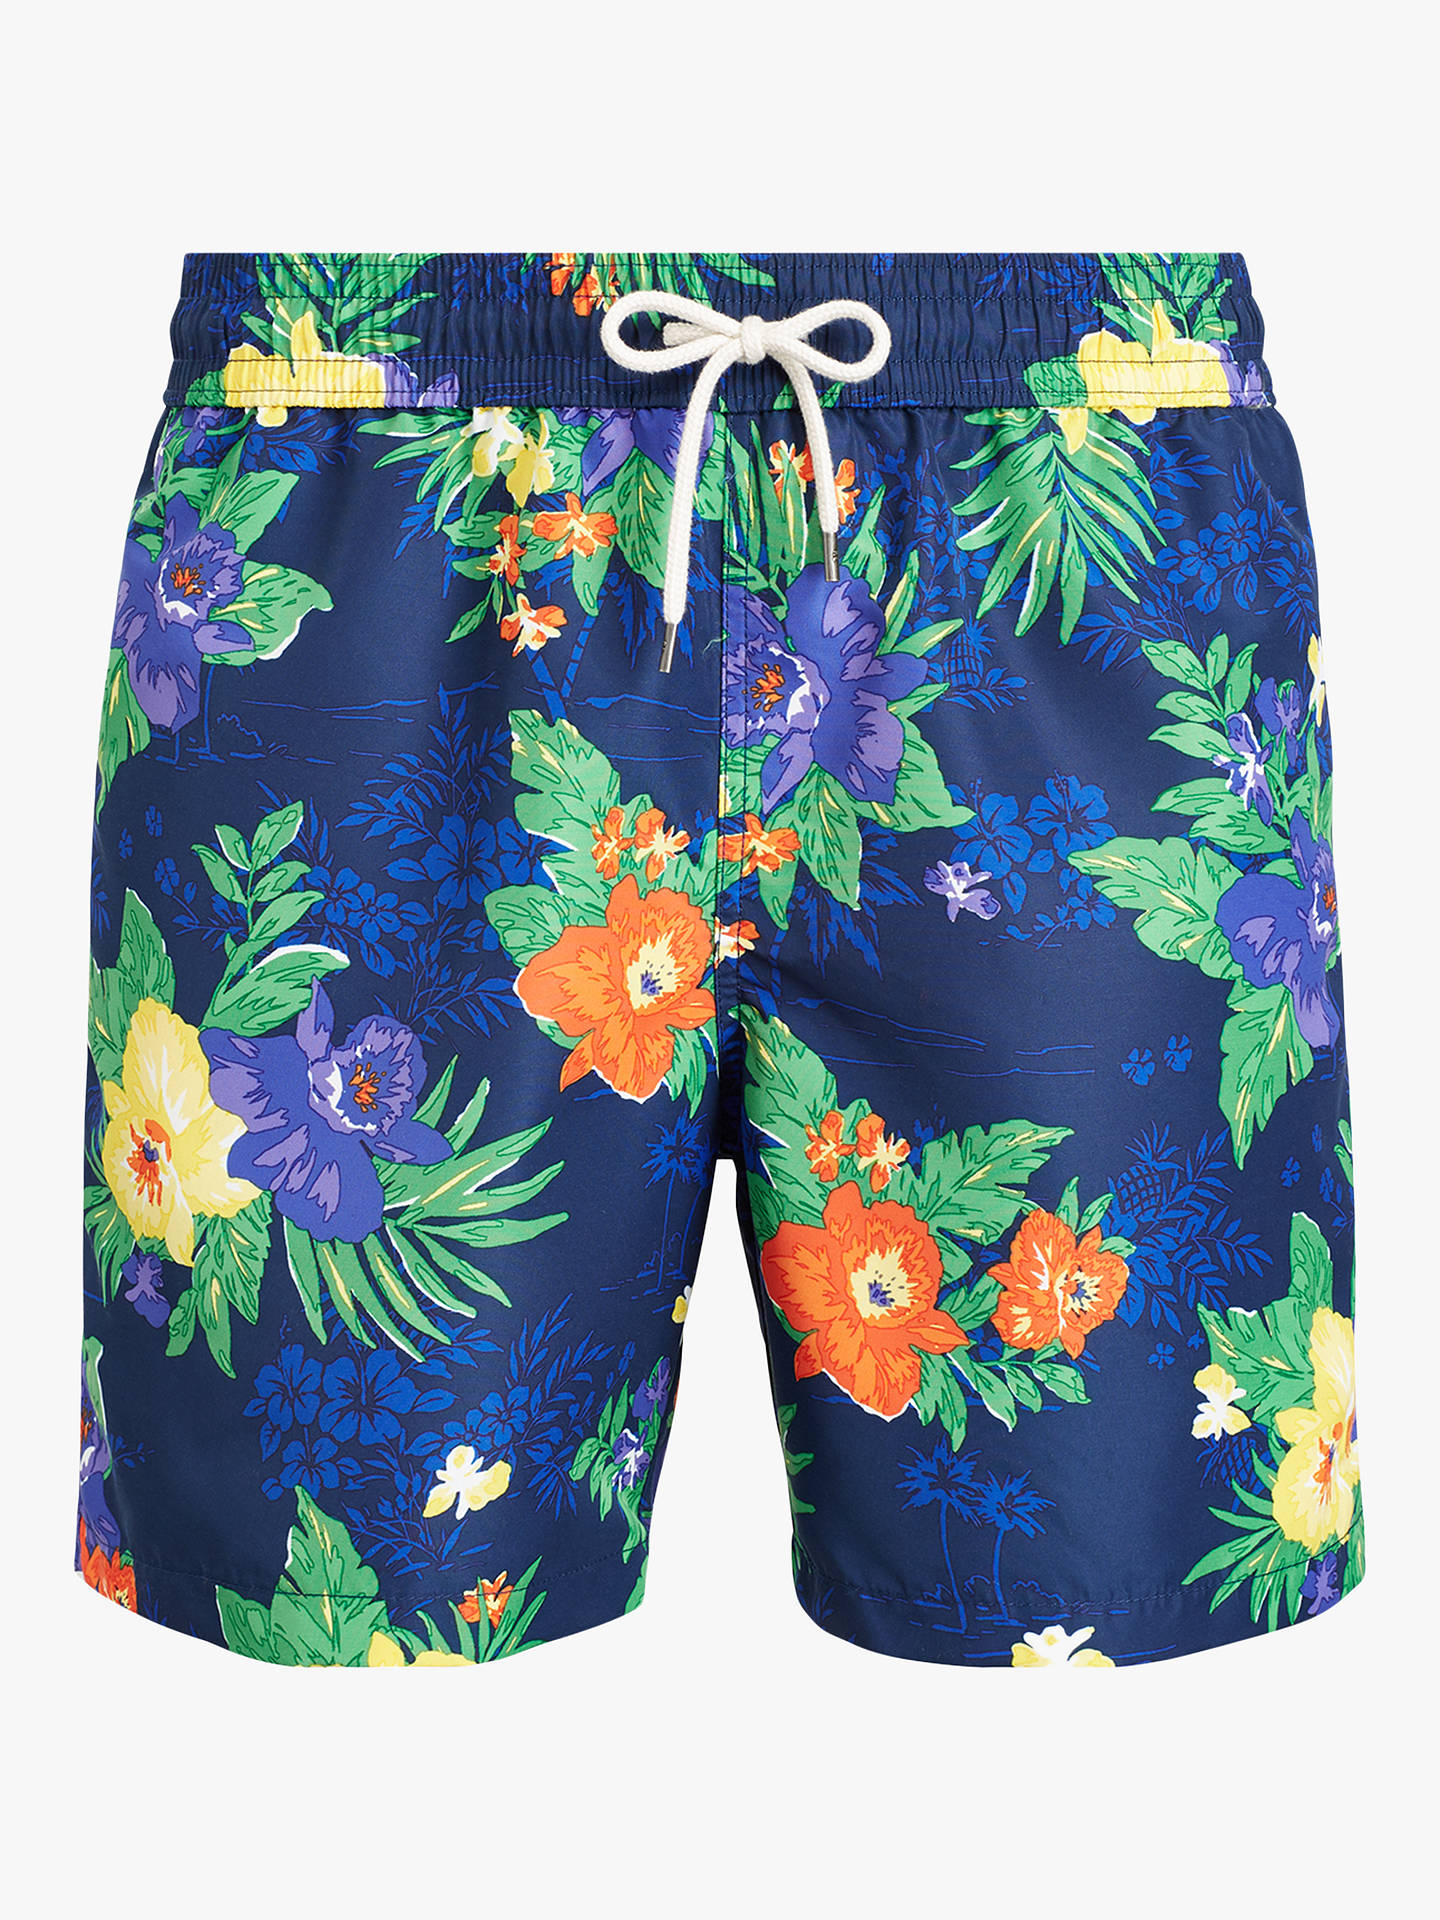 7ad0f47128 Buy Polo Ralph Lauren Tropical Flower Swim Shorts, Blue, S Online at  johnlewis.